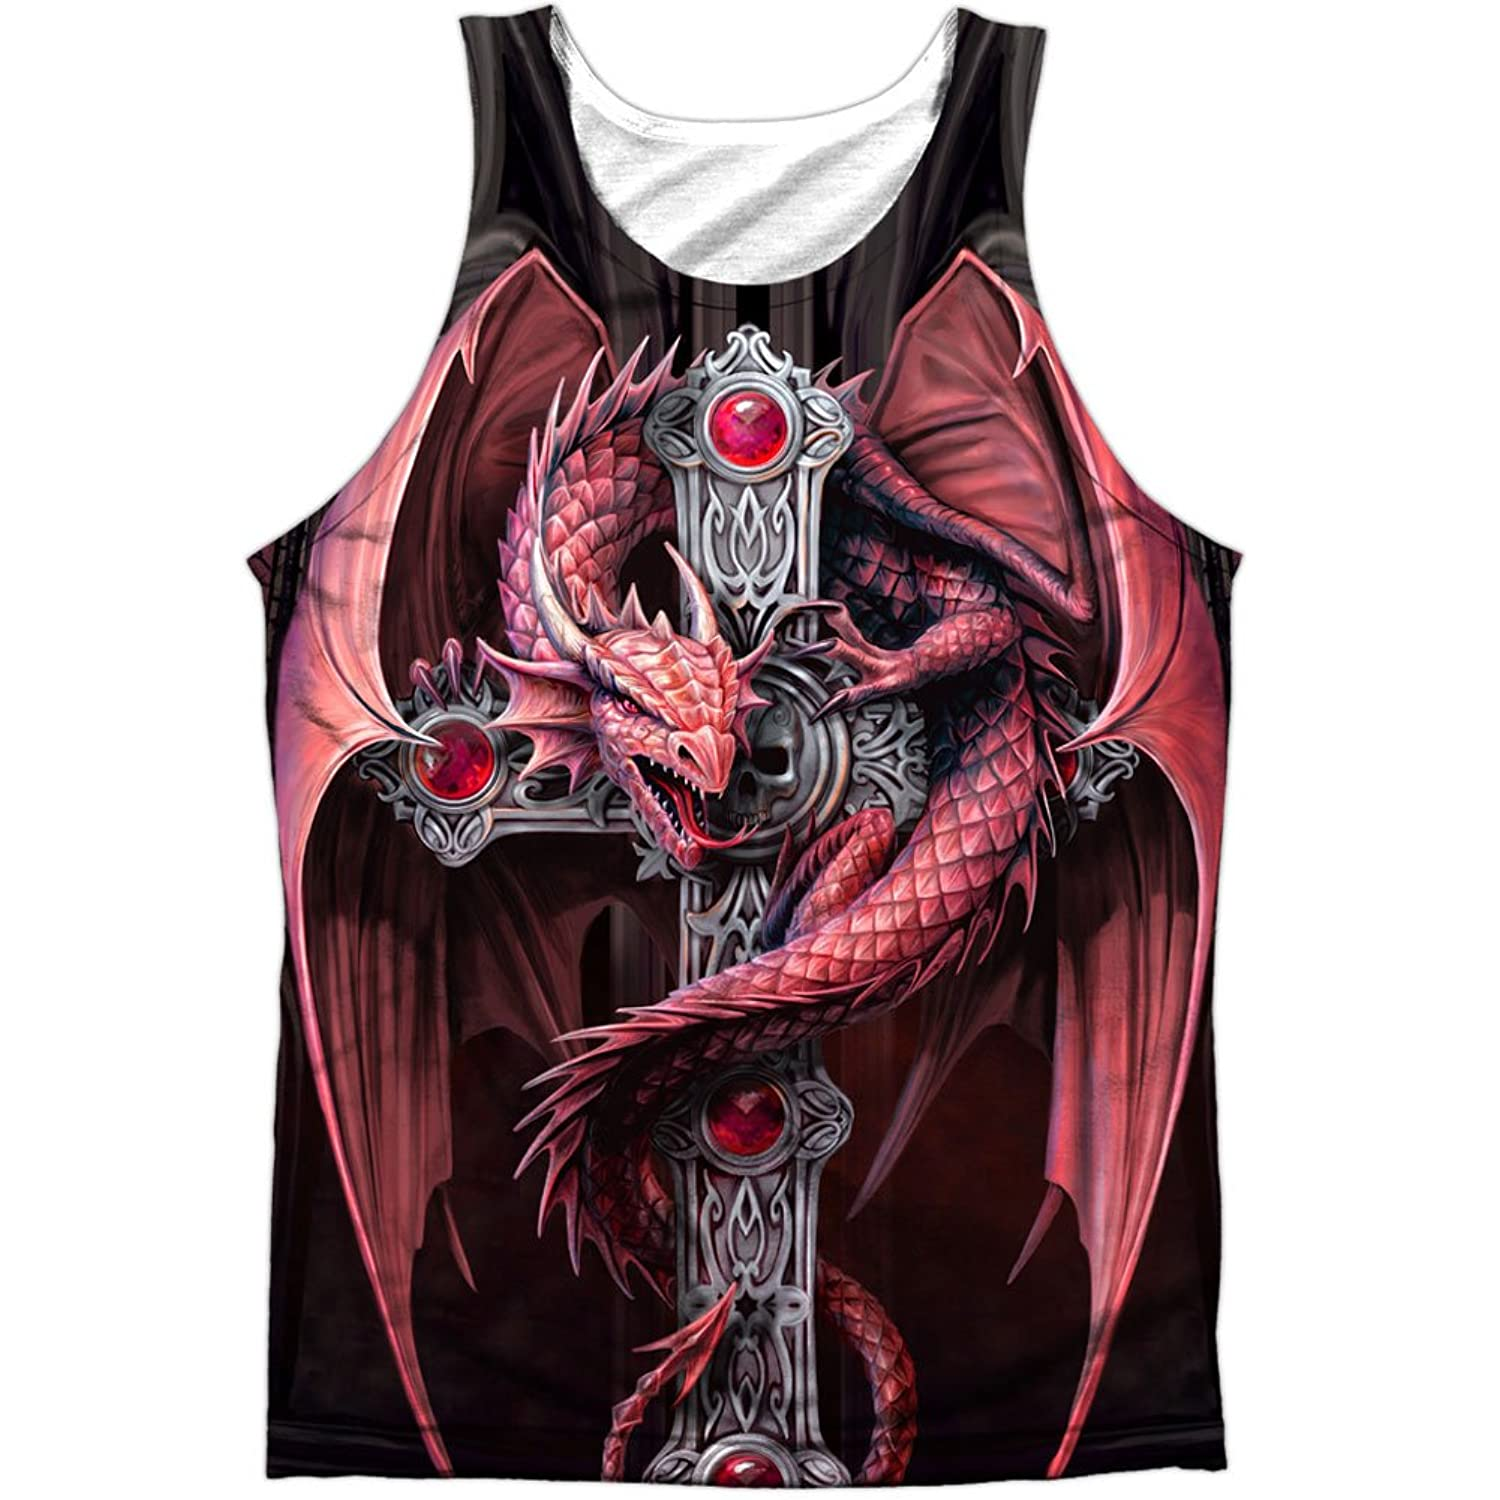 Anne Stokes Artist The Gothic Dragon Guardian Front Print Tank Top Shirt